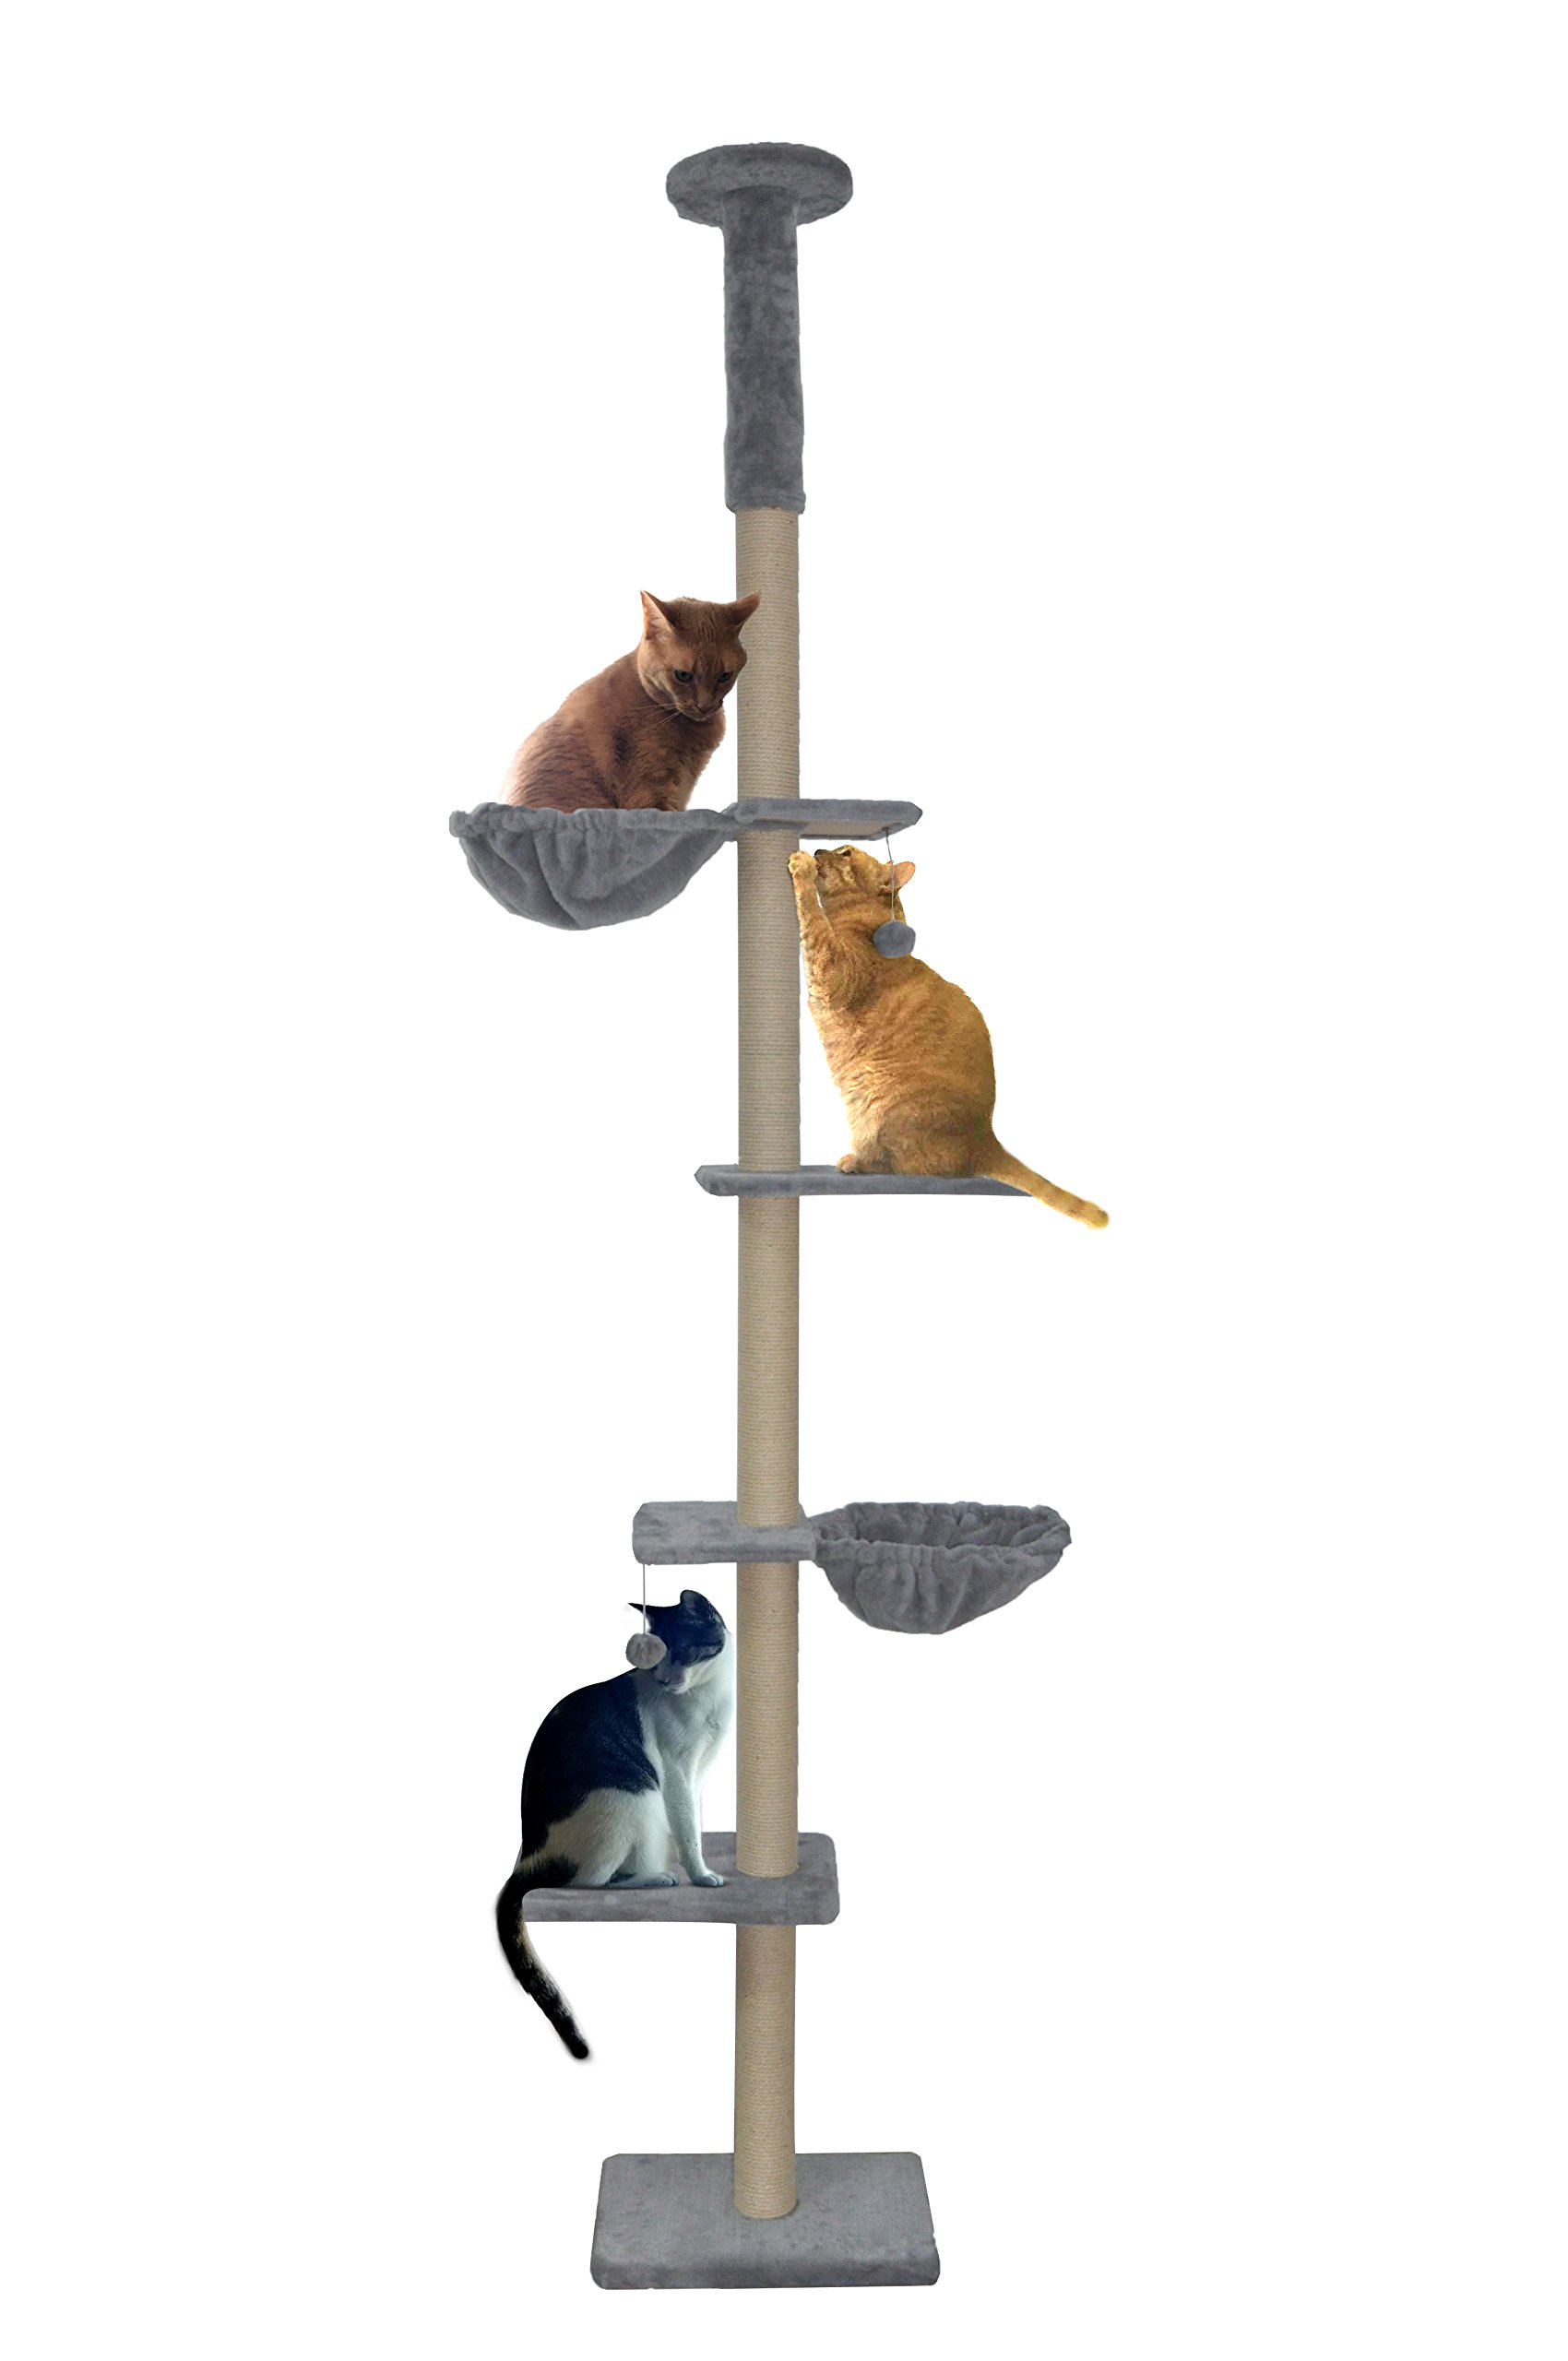 Roypet Upgraded Stable Adjustable 87''-116''Tall Cat Climbing Tree with Perches with Fixing Tool